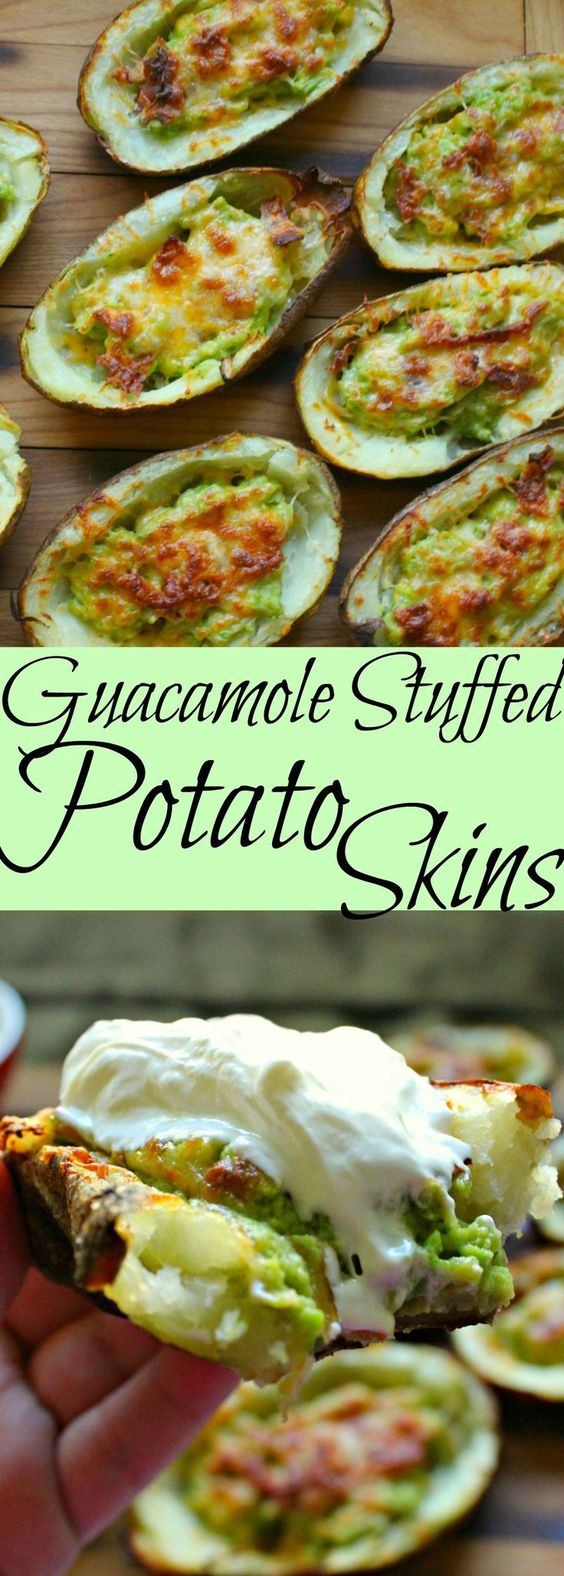 GUACAMOLE STUFFED POTATO SKINS